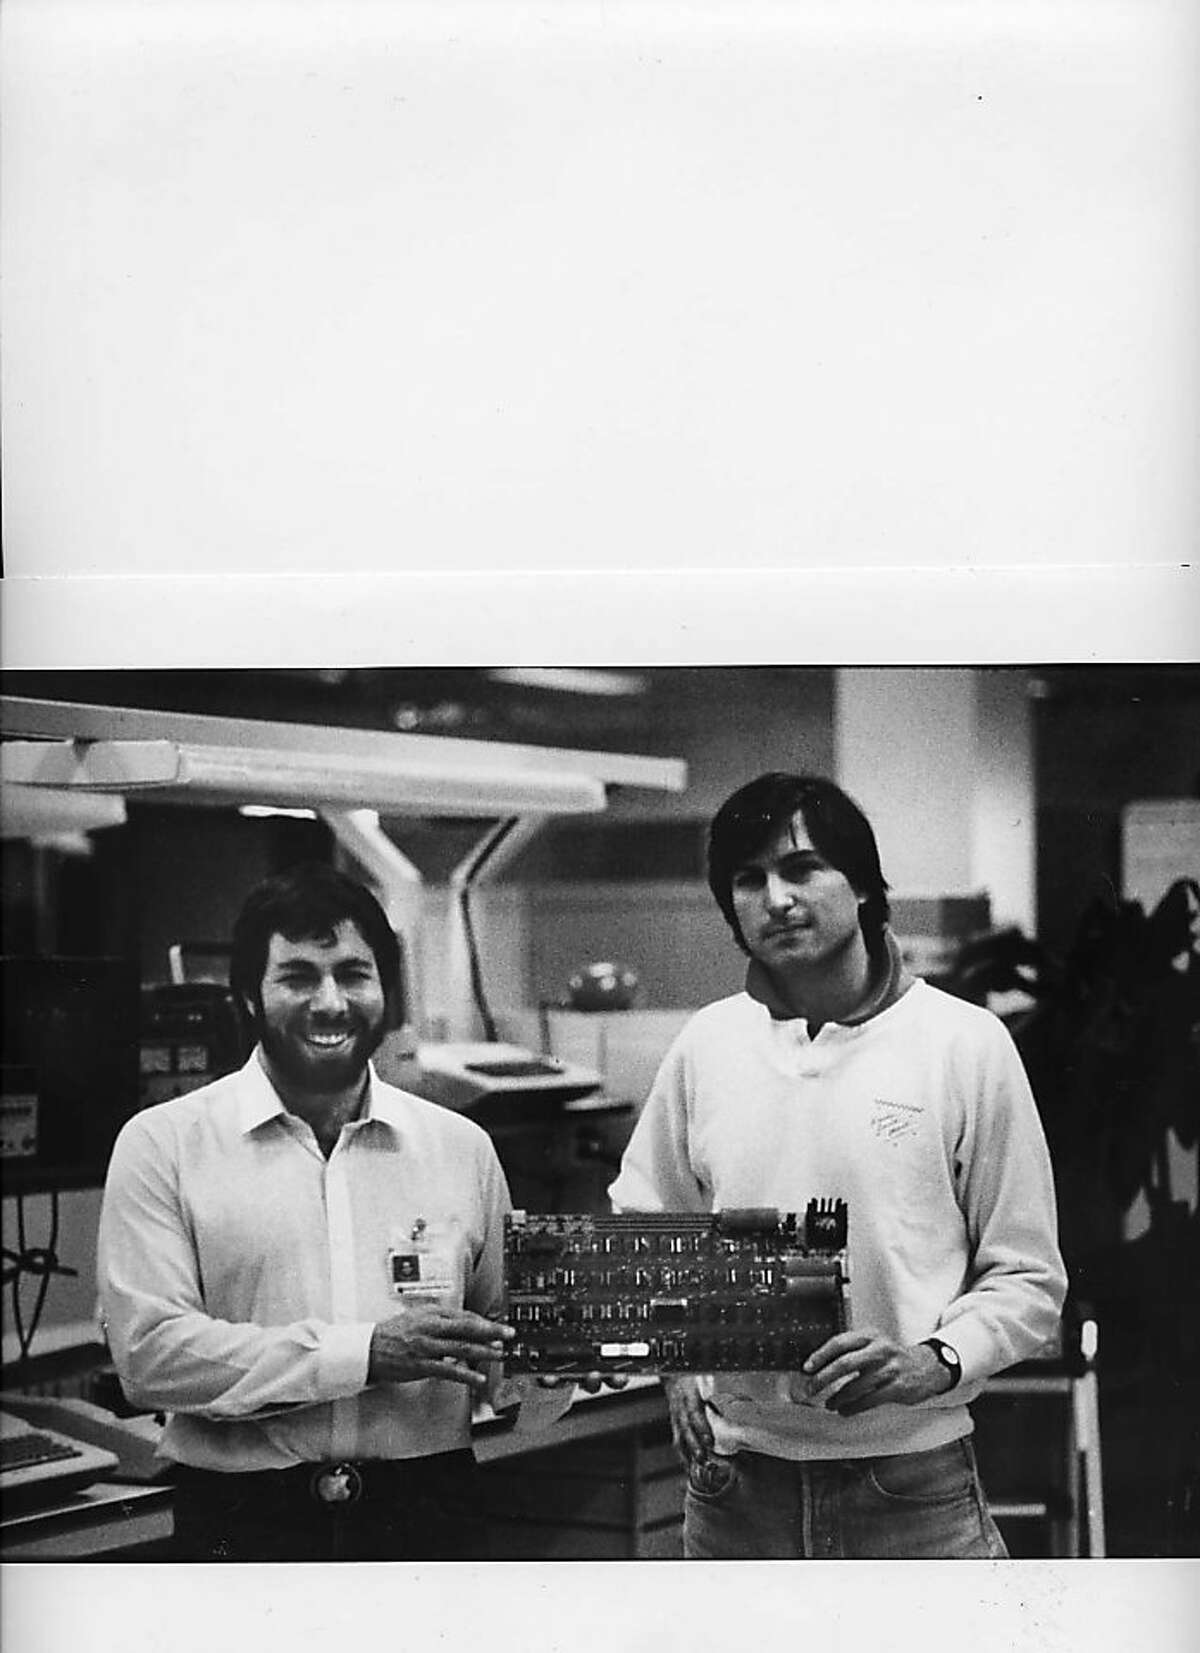 Steve Wozniak and Steve Jobs, Co-Founder of the Apple Computer with one of the original Apple I computer circuit boards.